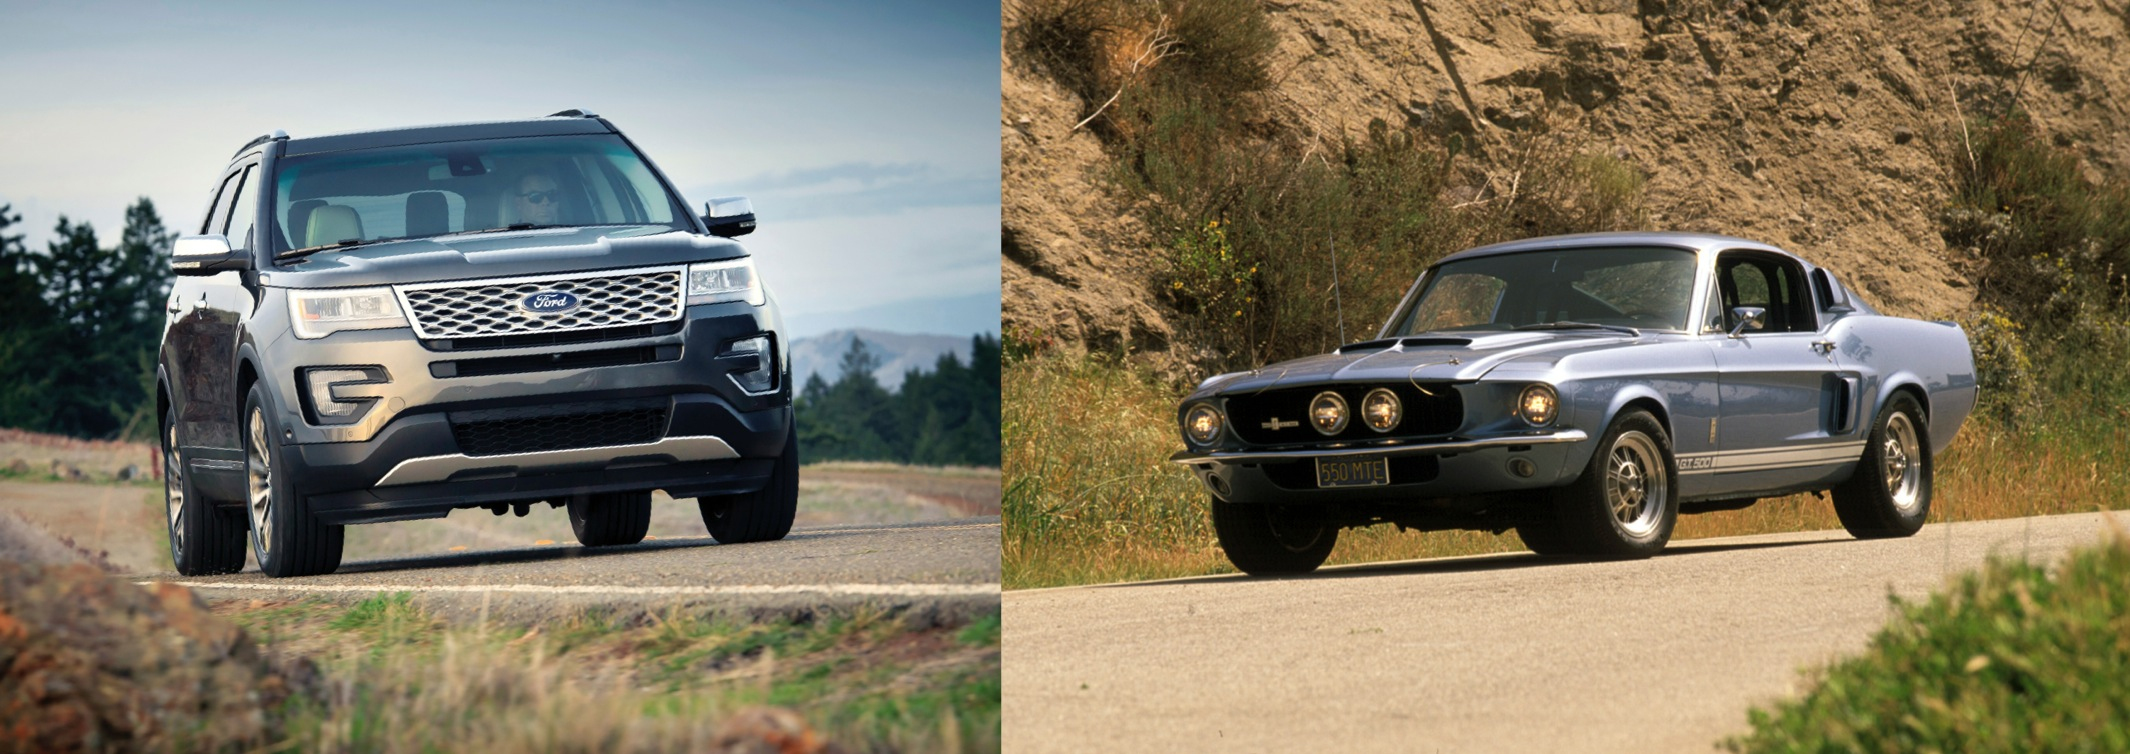 If we are a classical automobile enthusiast, a 1967 GT350 and Ford Explorer Pair is a garage value forgetful about.